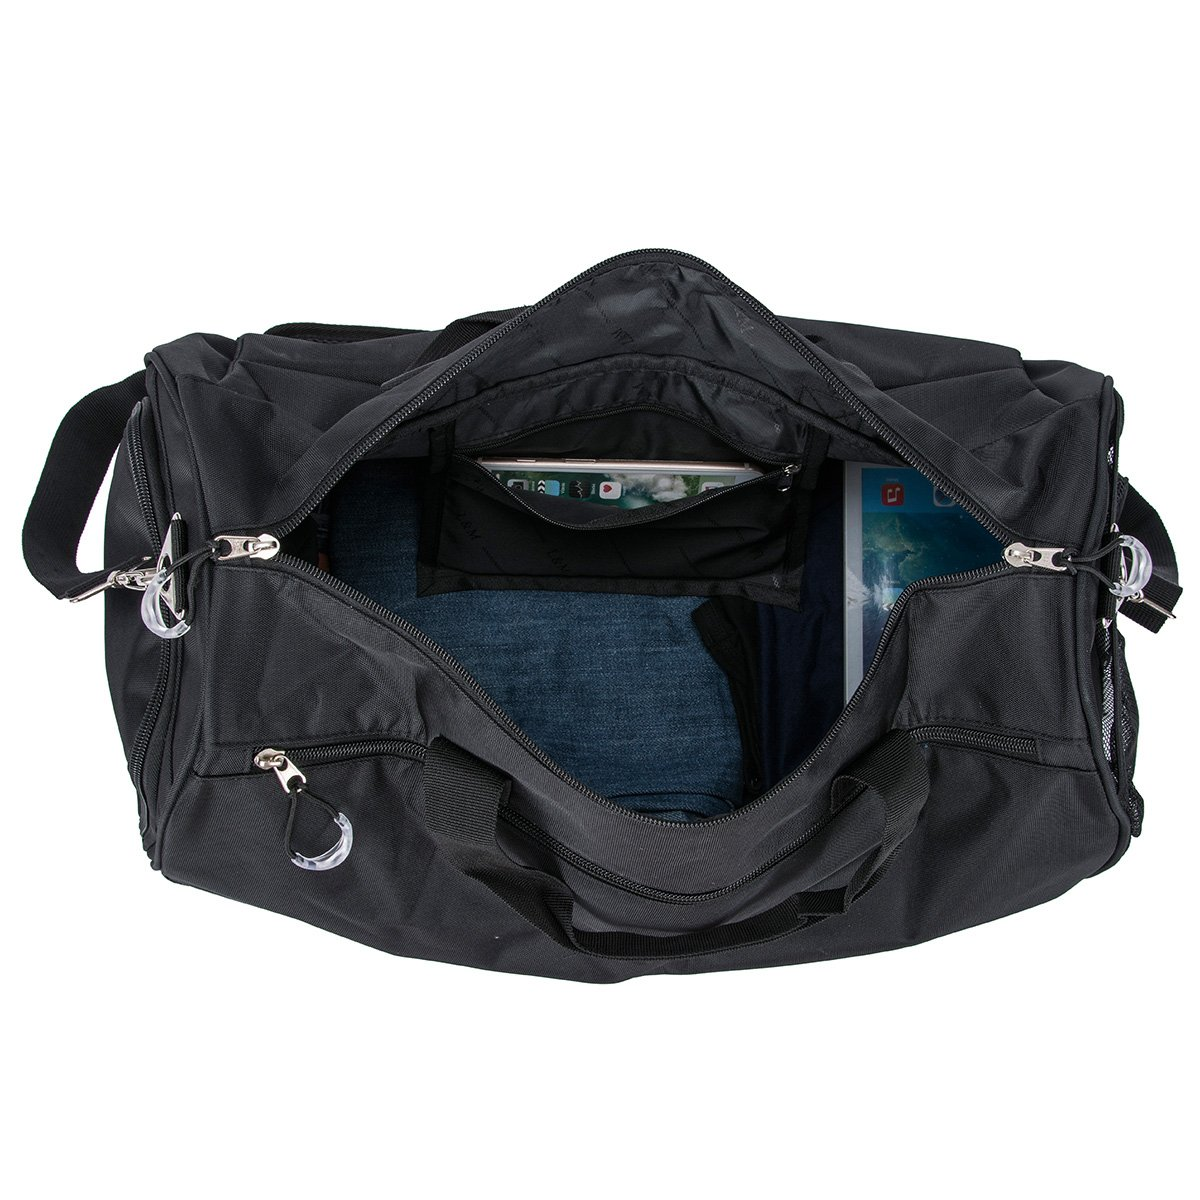 c18c71dbcf82 Amazon.com  Kuston Sports Gym Bag with Shoes Compartment Travel Duffel Bag  for Men and Women  Sports   Outdoors